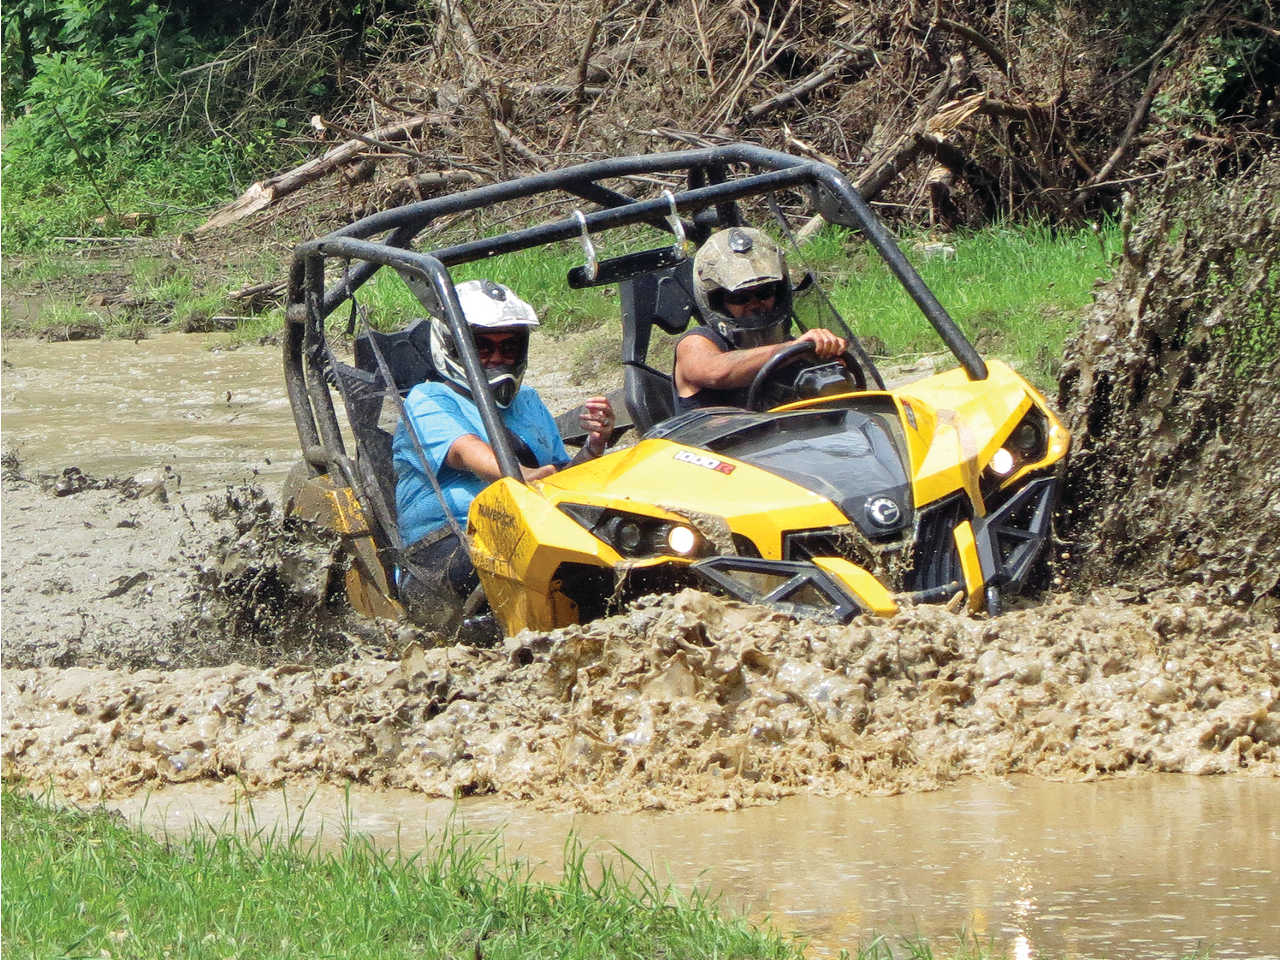 location.2014.spearhead-trails.can-am.maverick.riding.through-mud.jpg